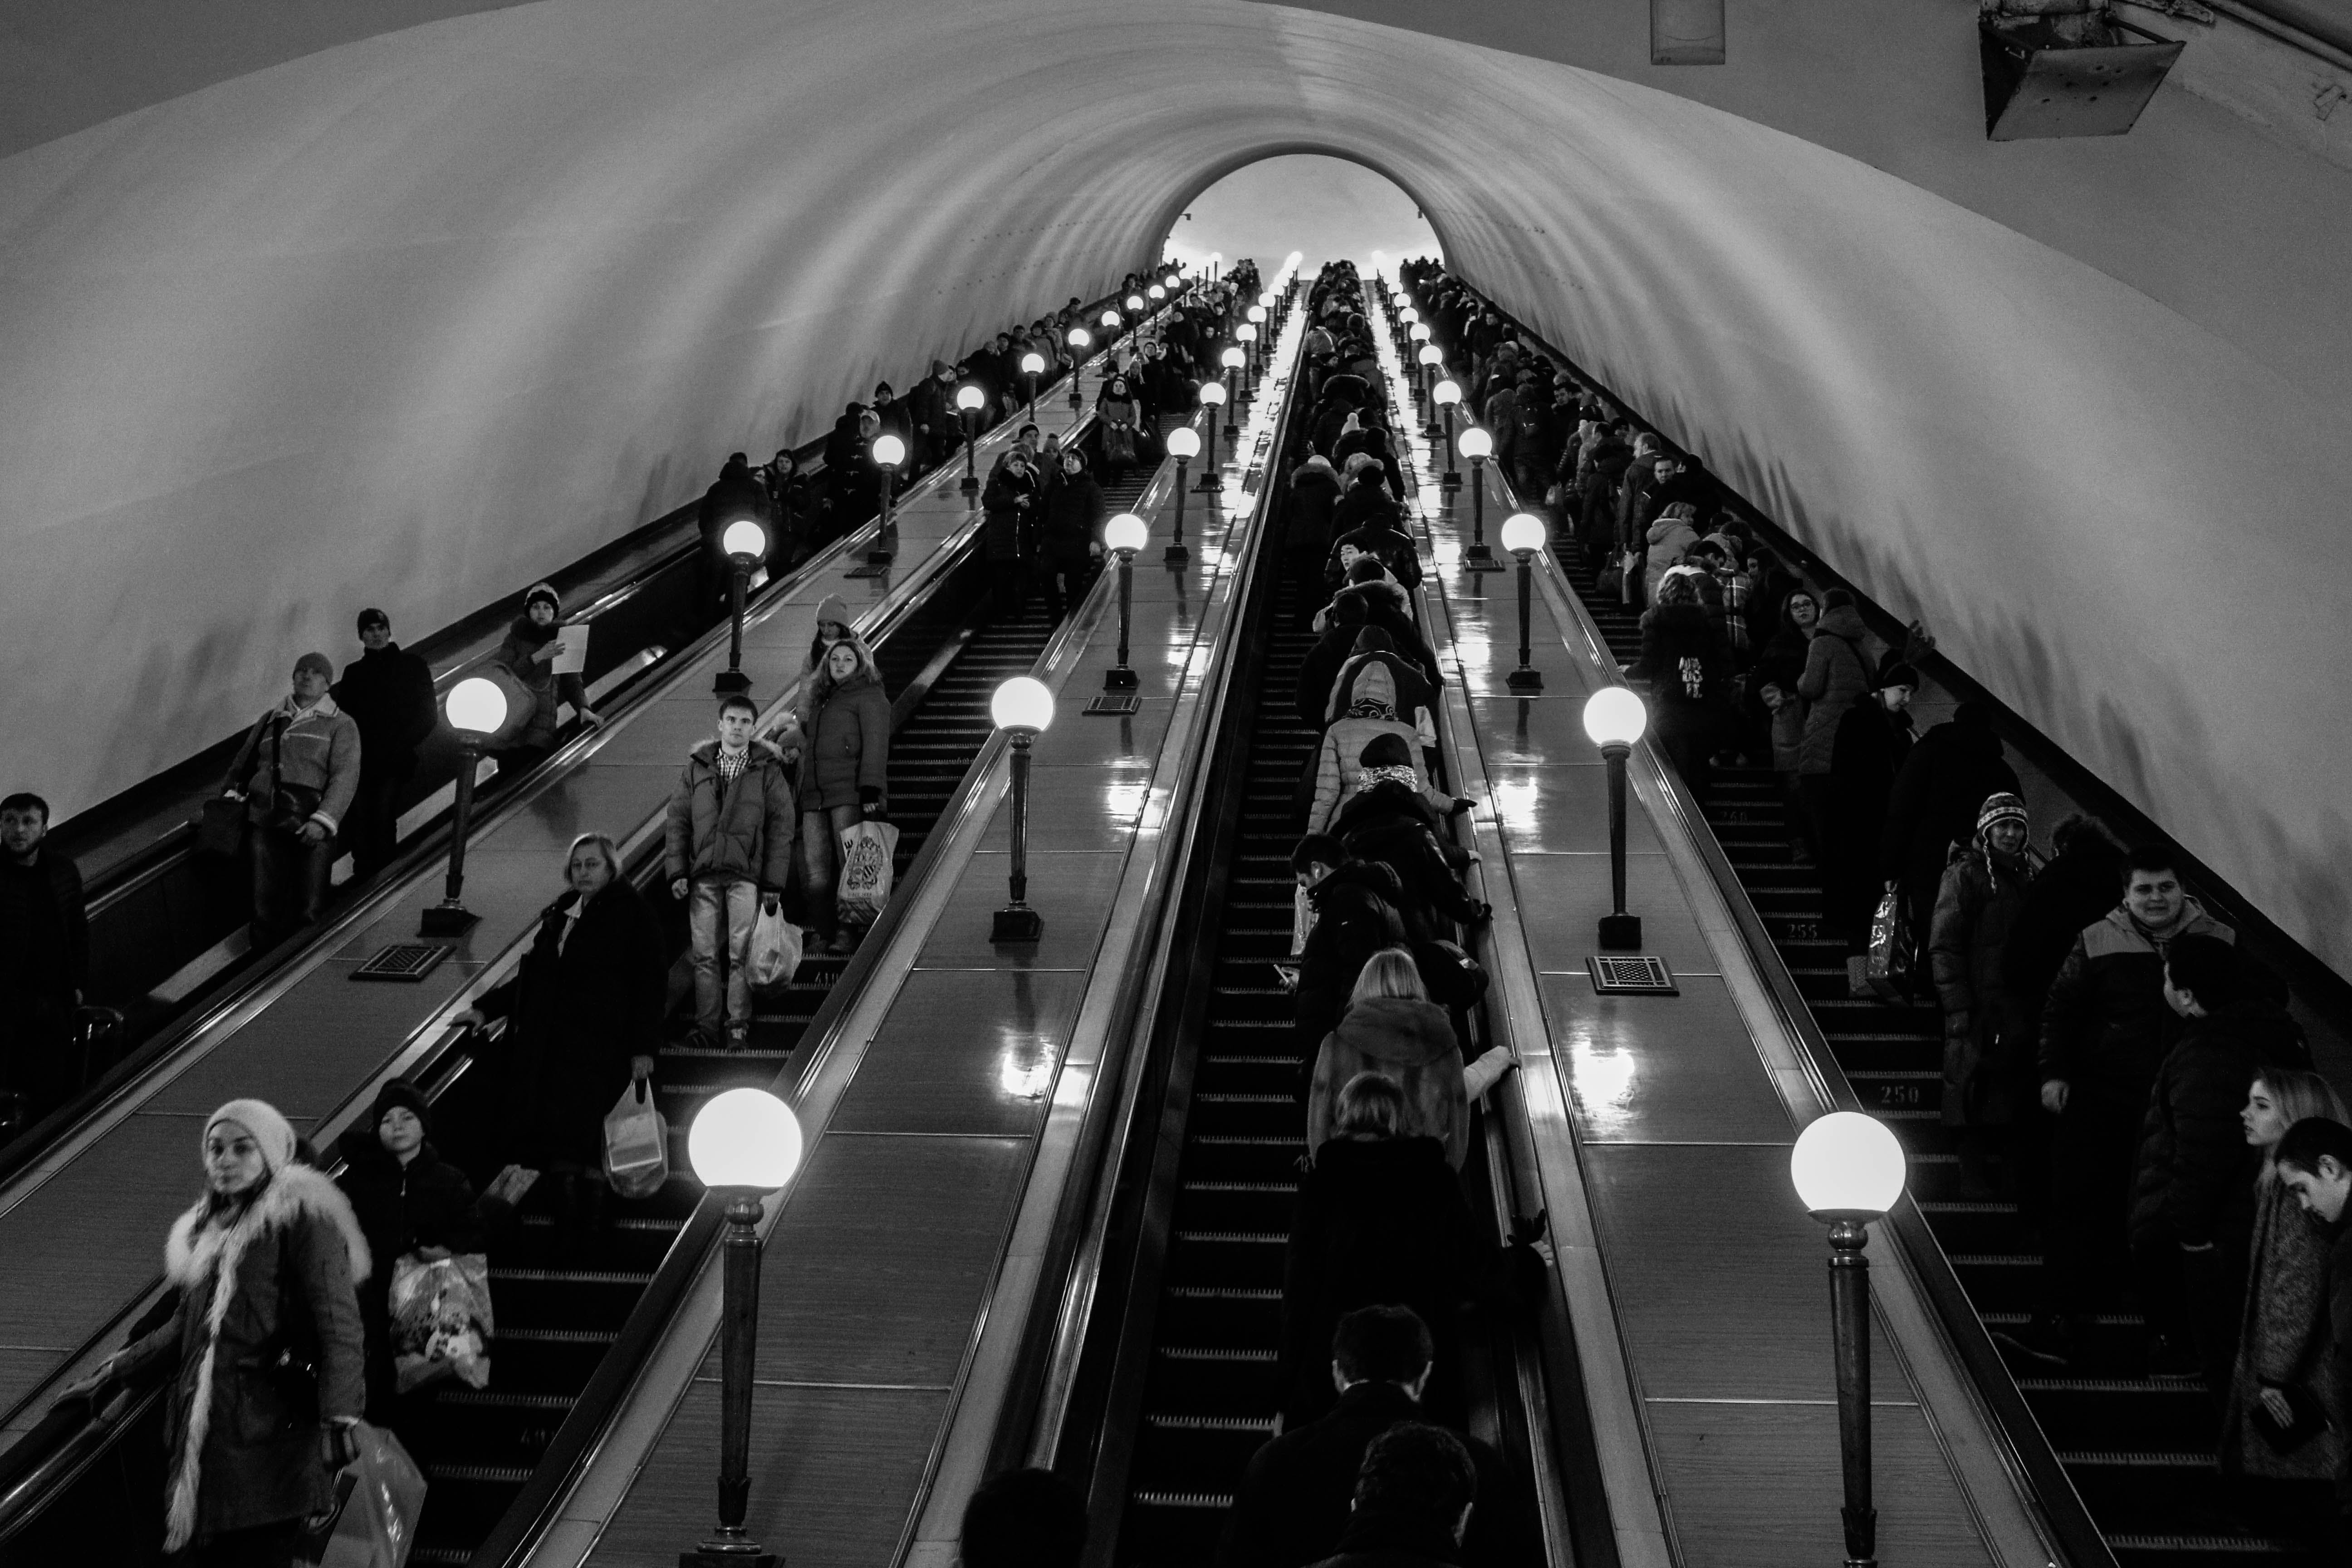 Grayscale Photo of Escalator